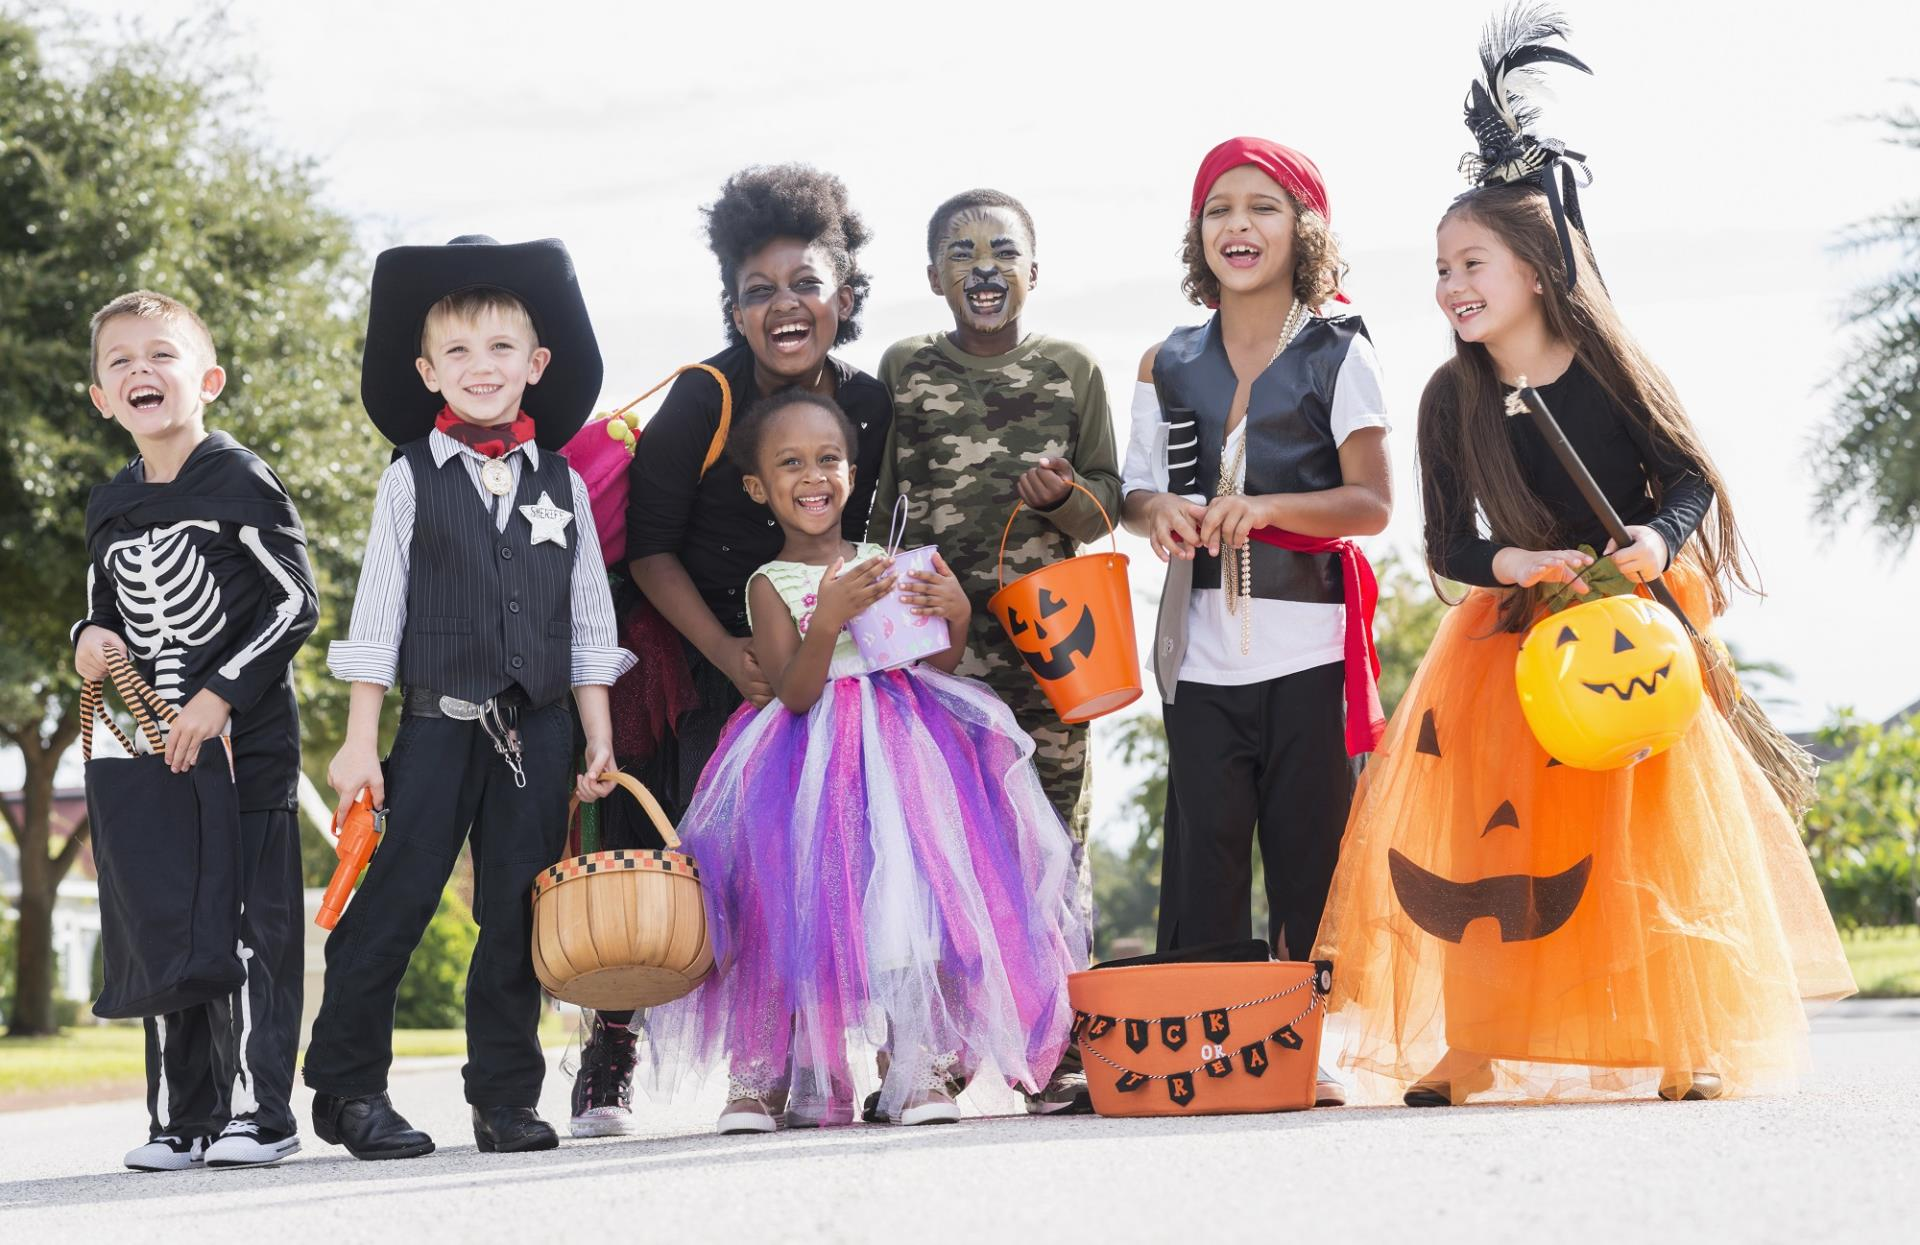 A group of children wearing Halloween costumes and carrying trick-or-treat baskets.